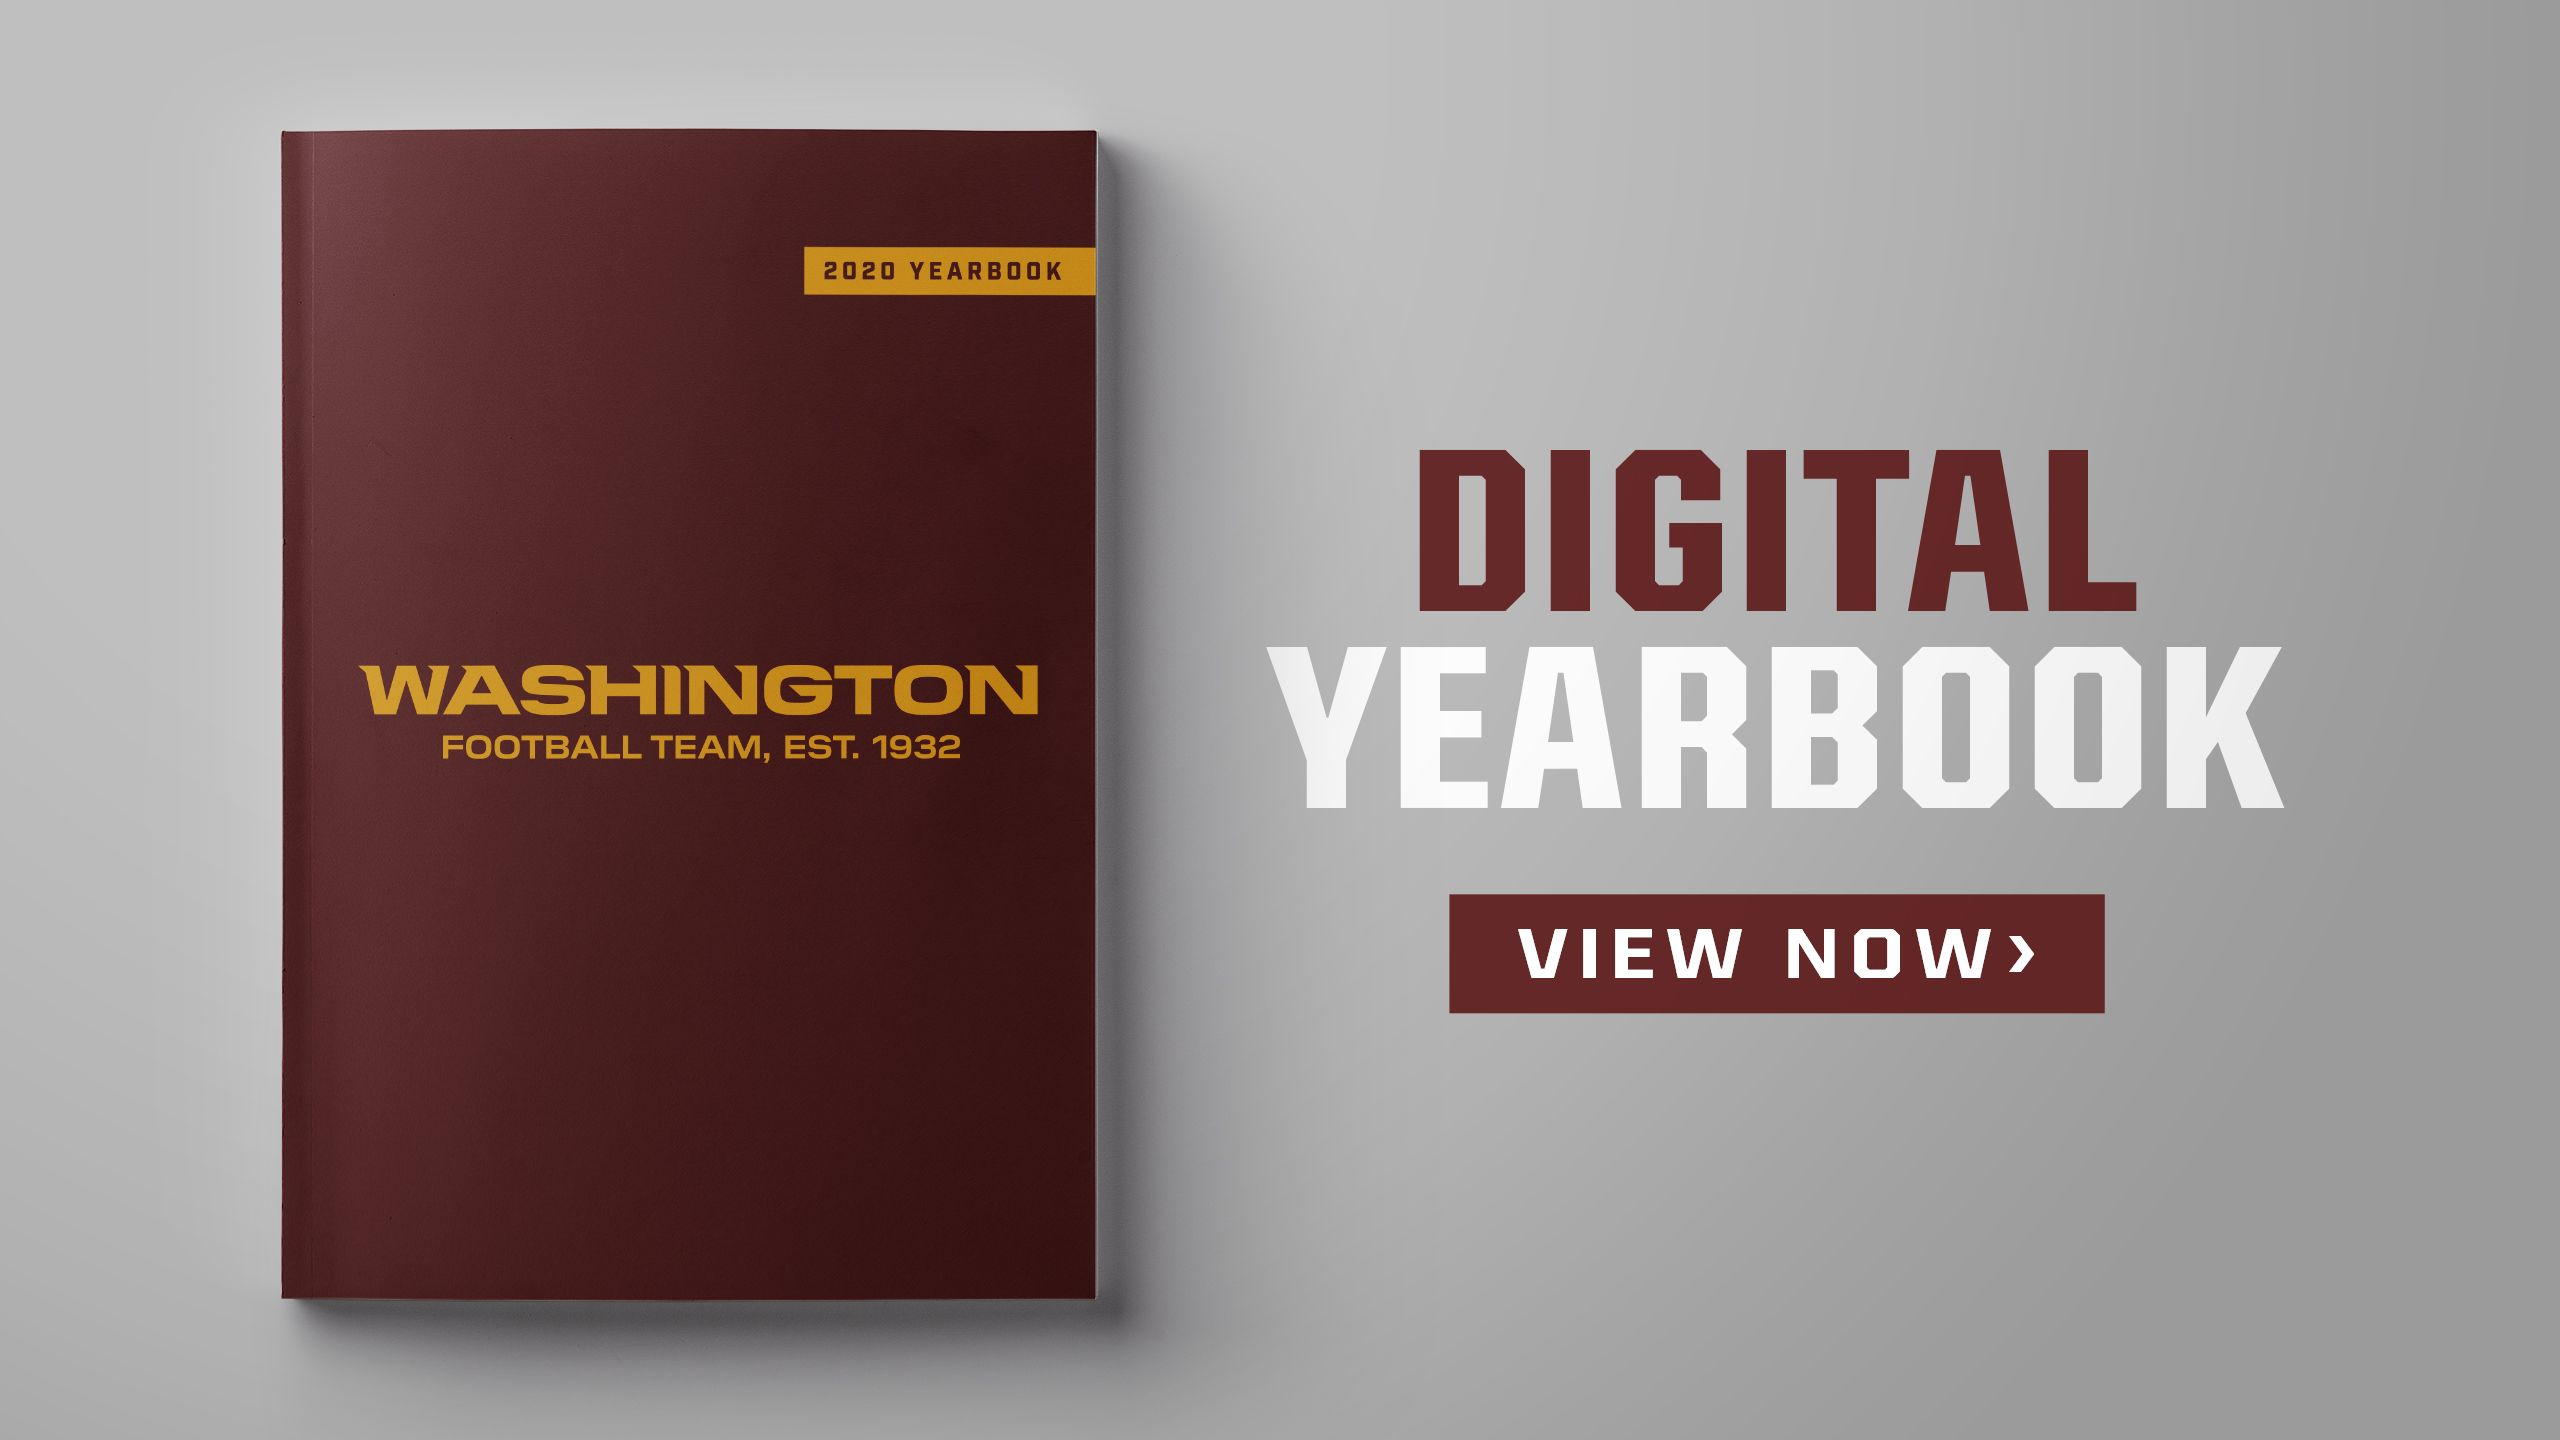 YearbookCover_CTA_2560x1440